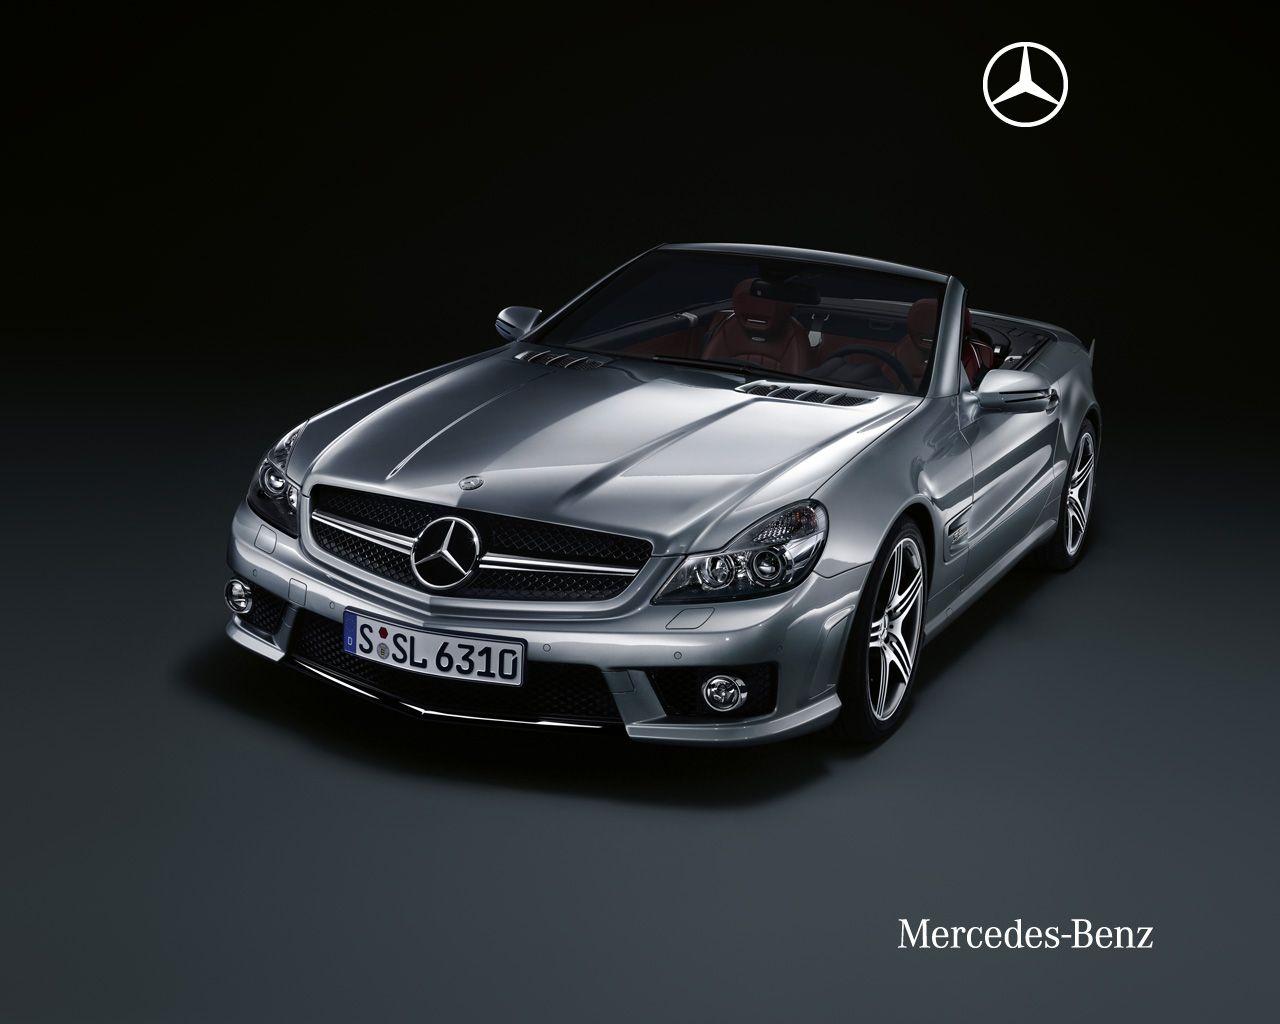 Awesome Mercedes Logo Black And White Car Images Hd Cars Benz Mclaren Dark HD